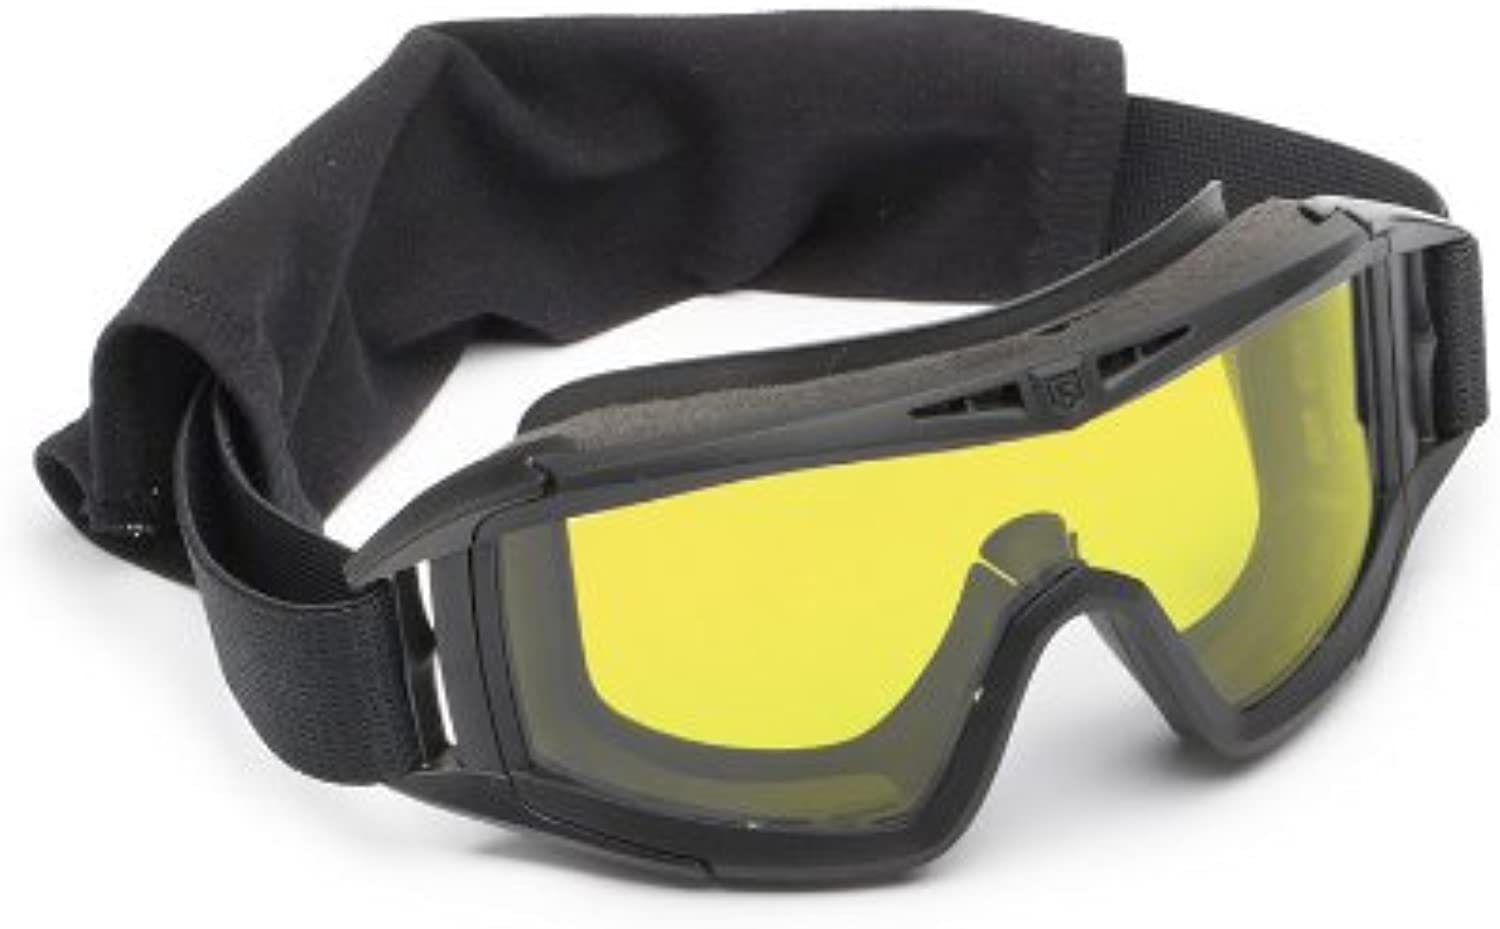 Revision Military Desert Locust Goggle Basic  Yellow HighConrast Lens  Black